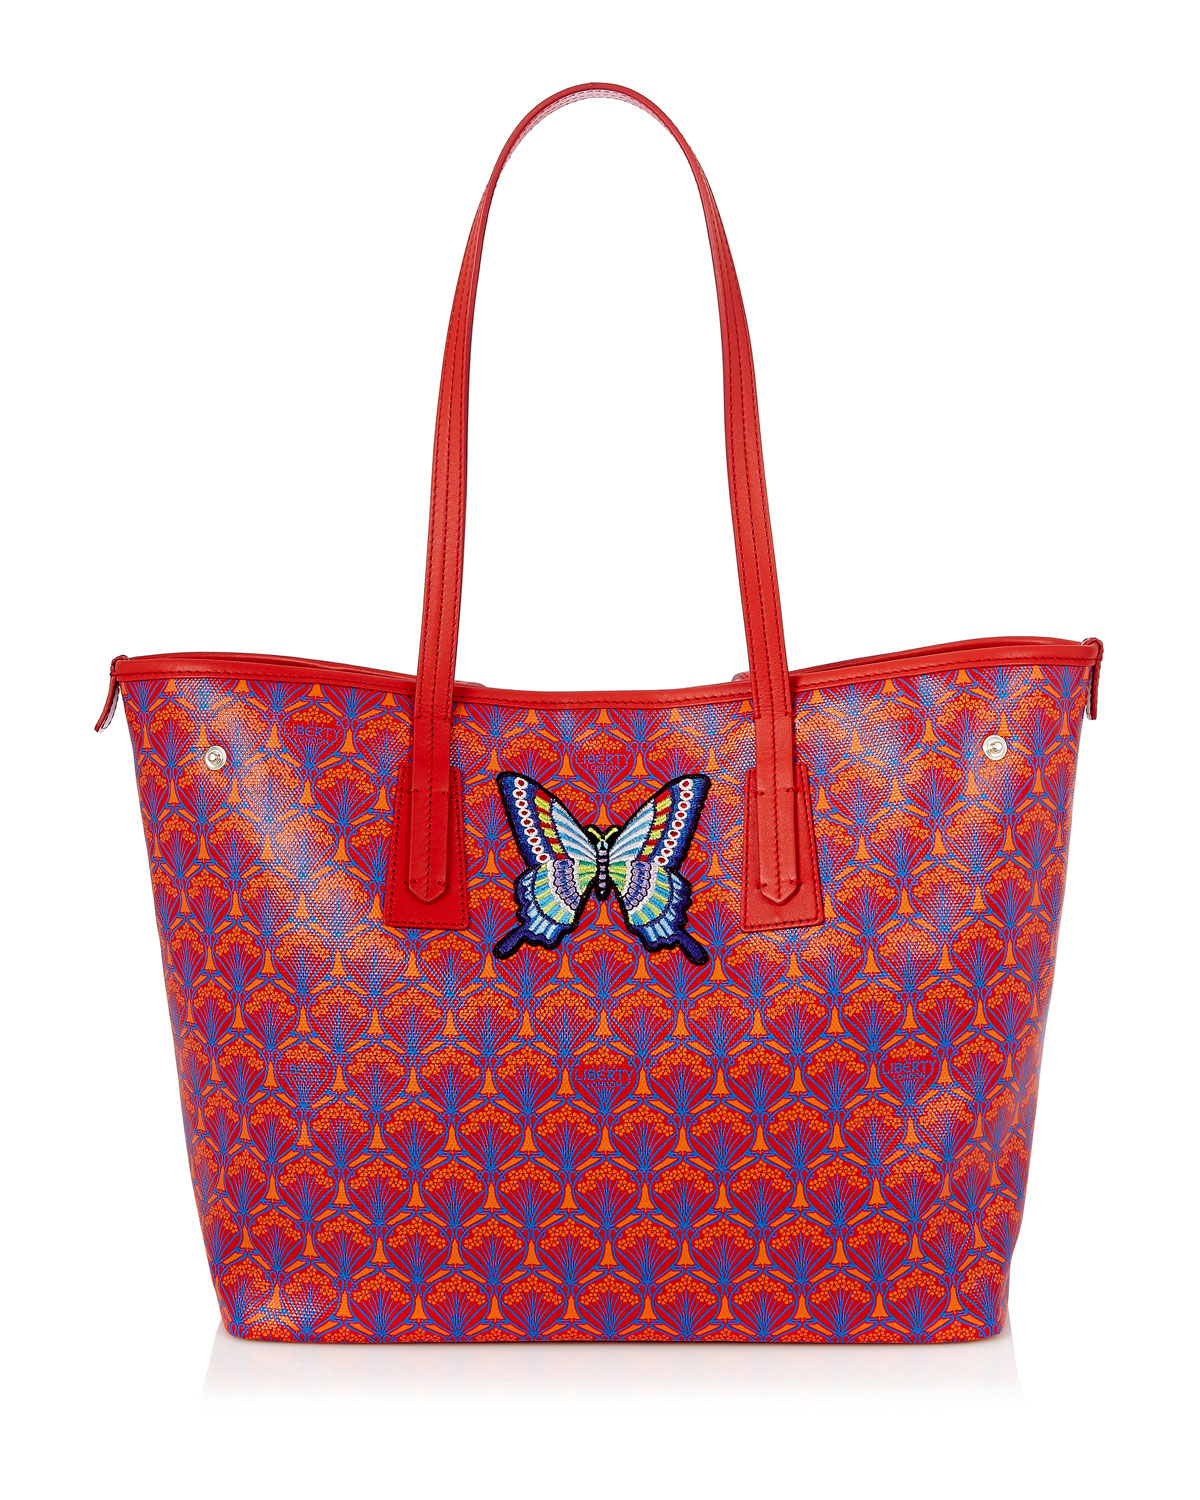 59059557ab9fb Liberty London Marlborough Iphis Butterfly Patches Tote Bag